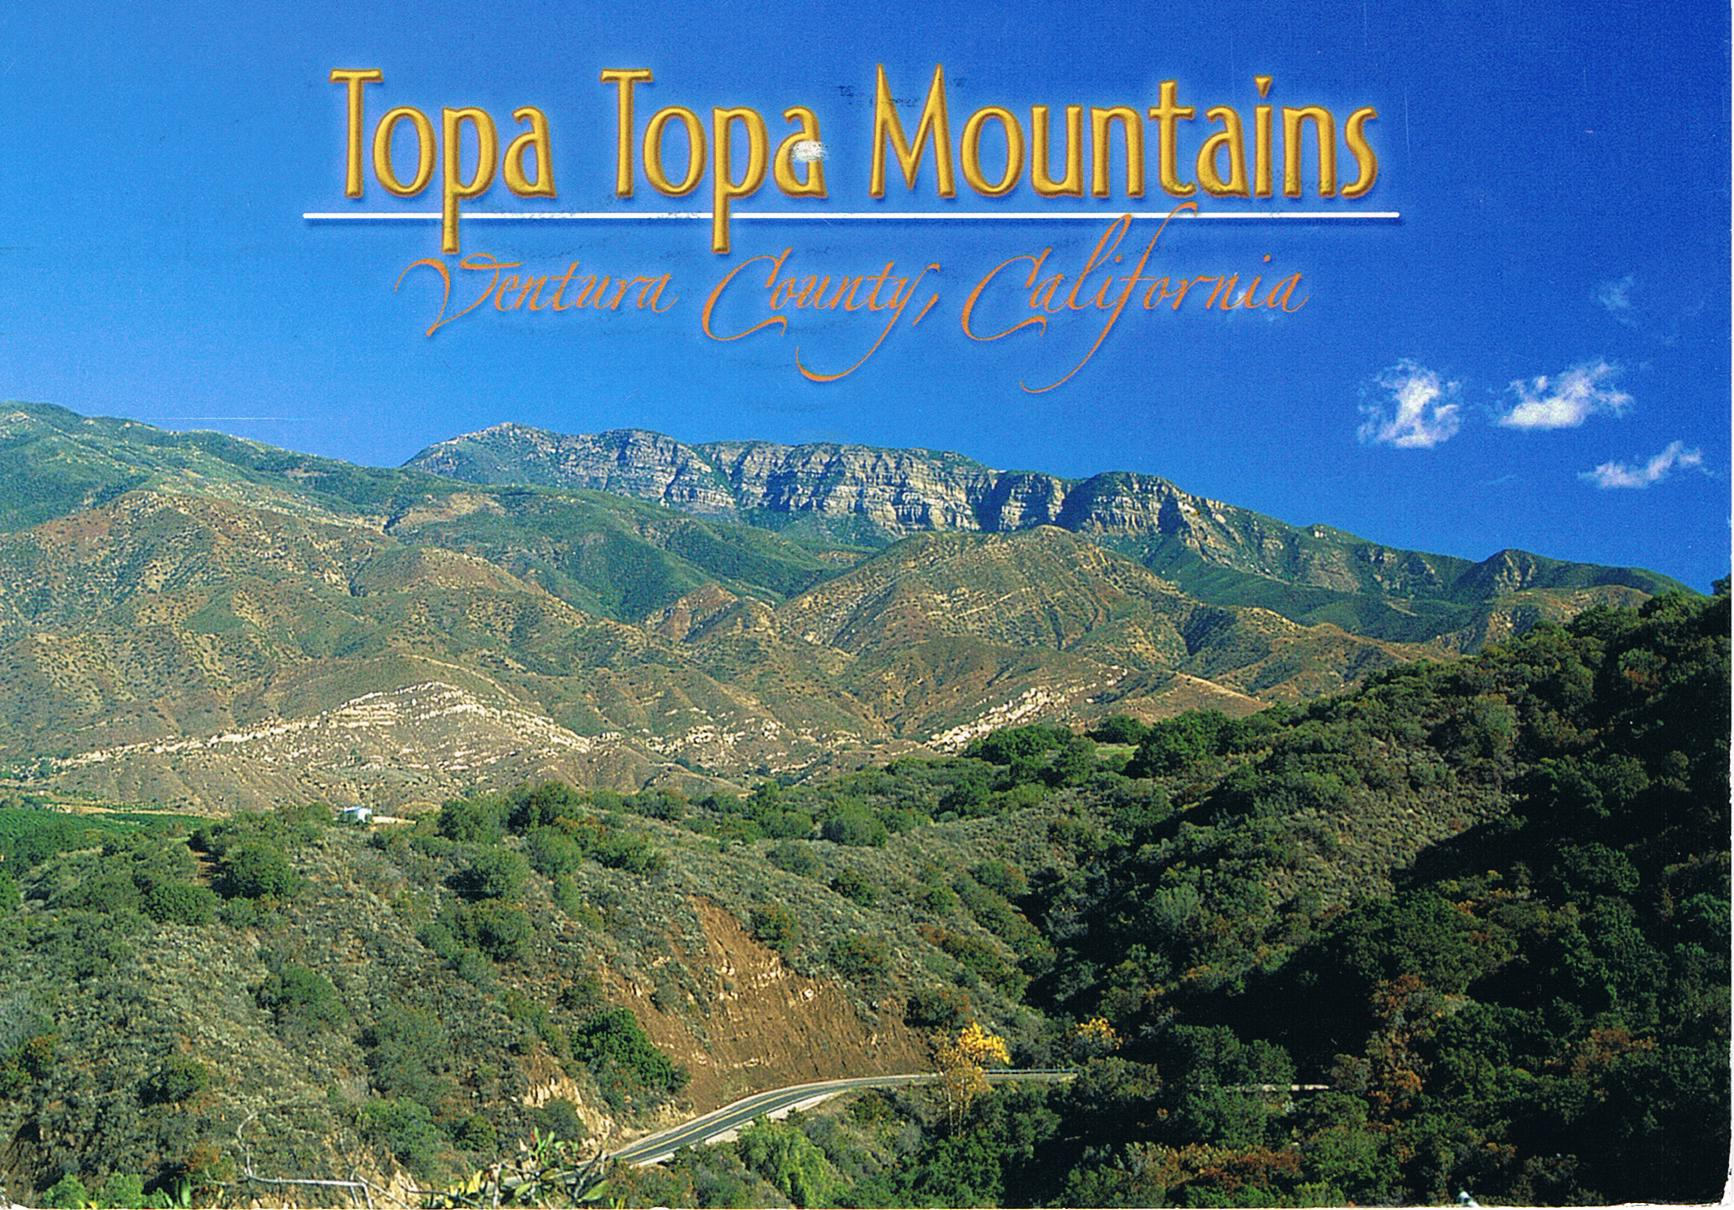 Topa Topa Mountains in Kalifornien, USA